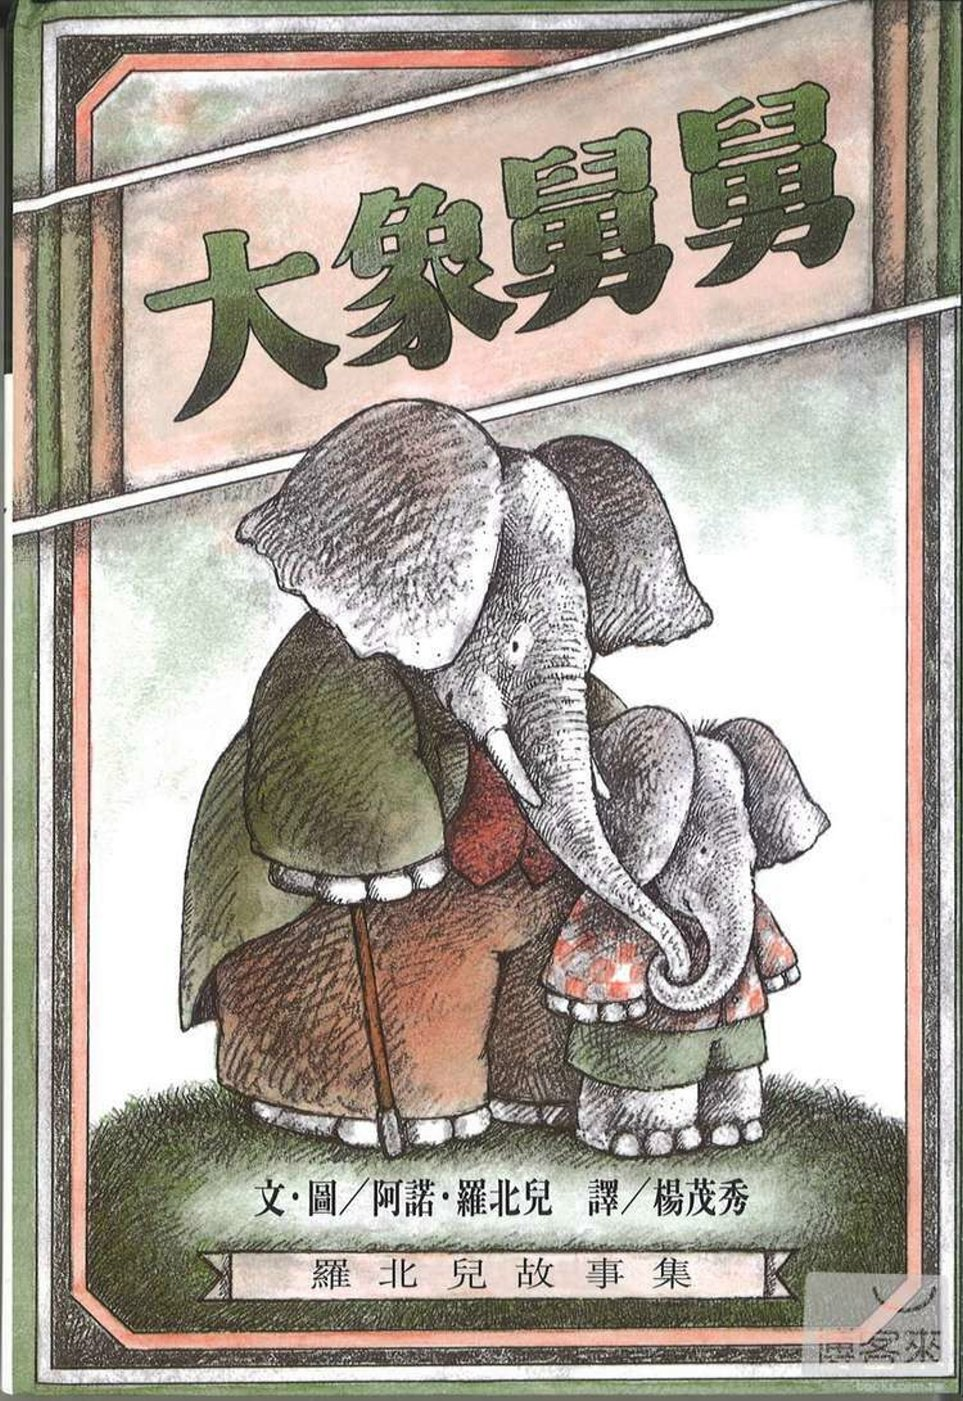 大象舅舅 = Uncle elephant /